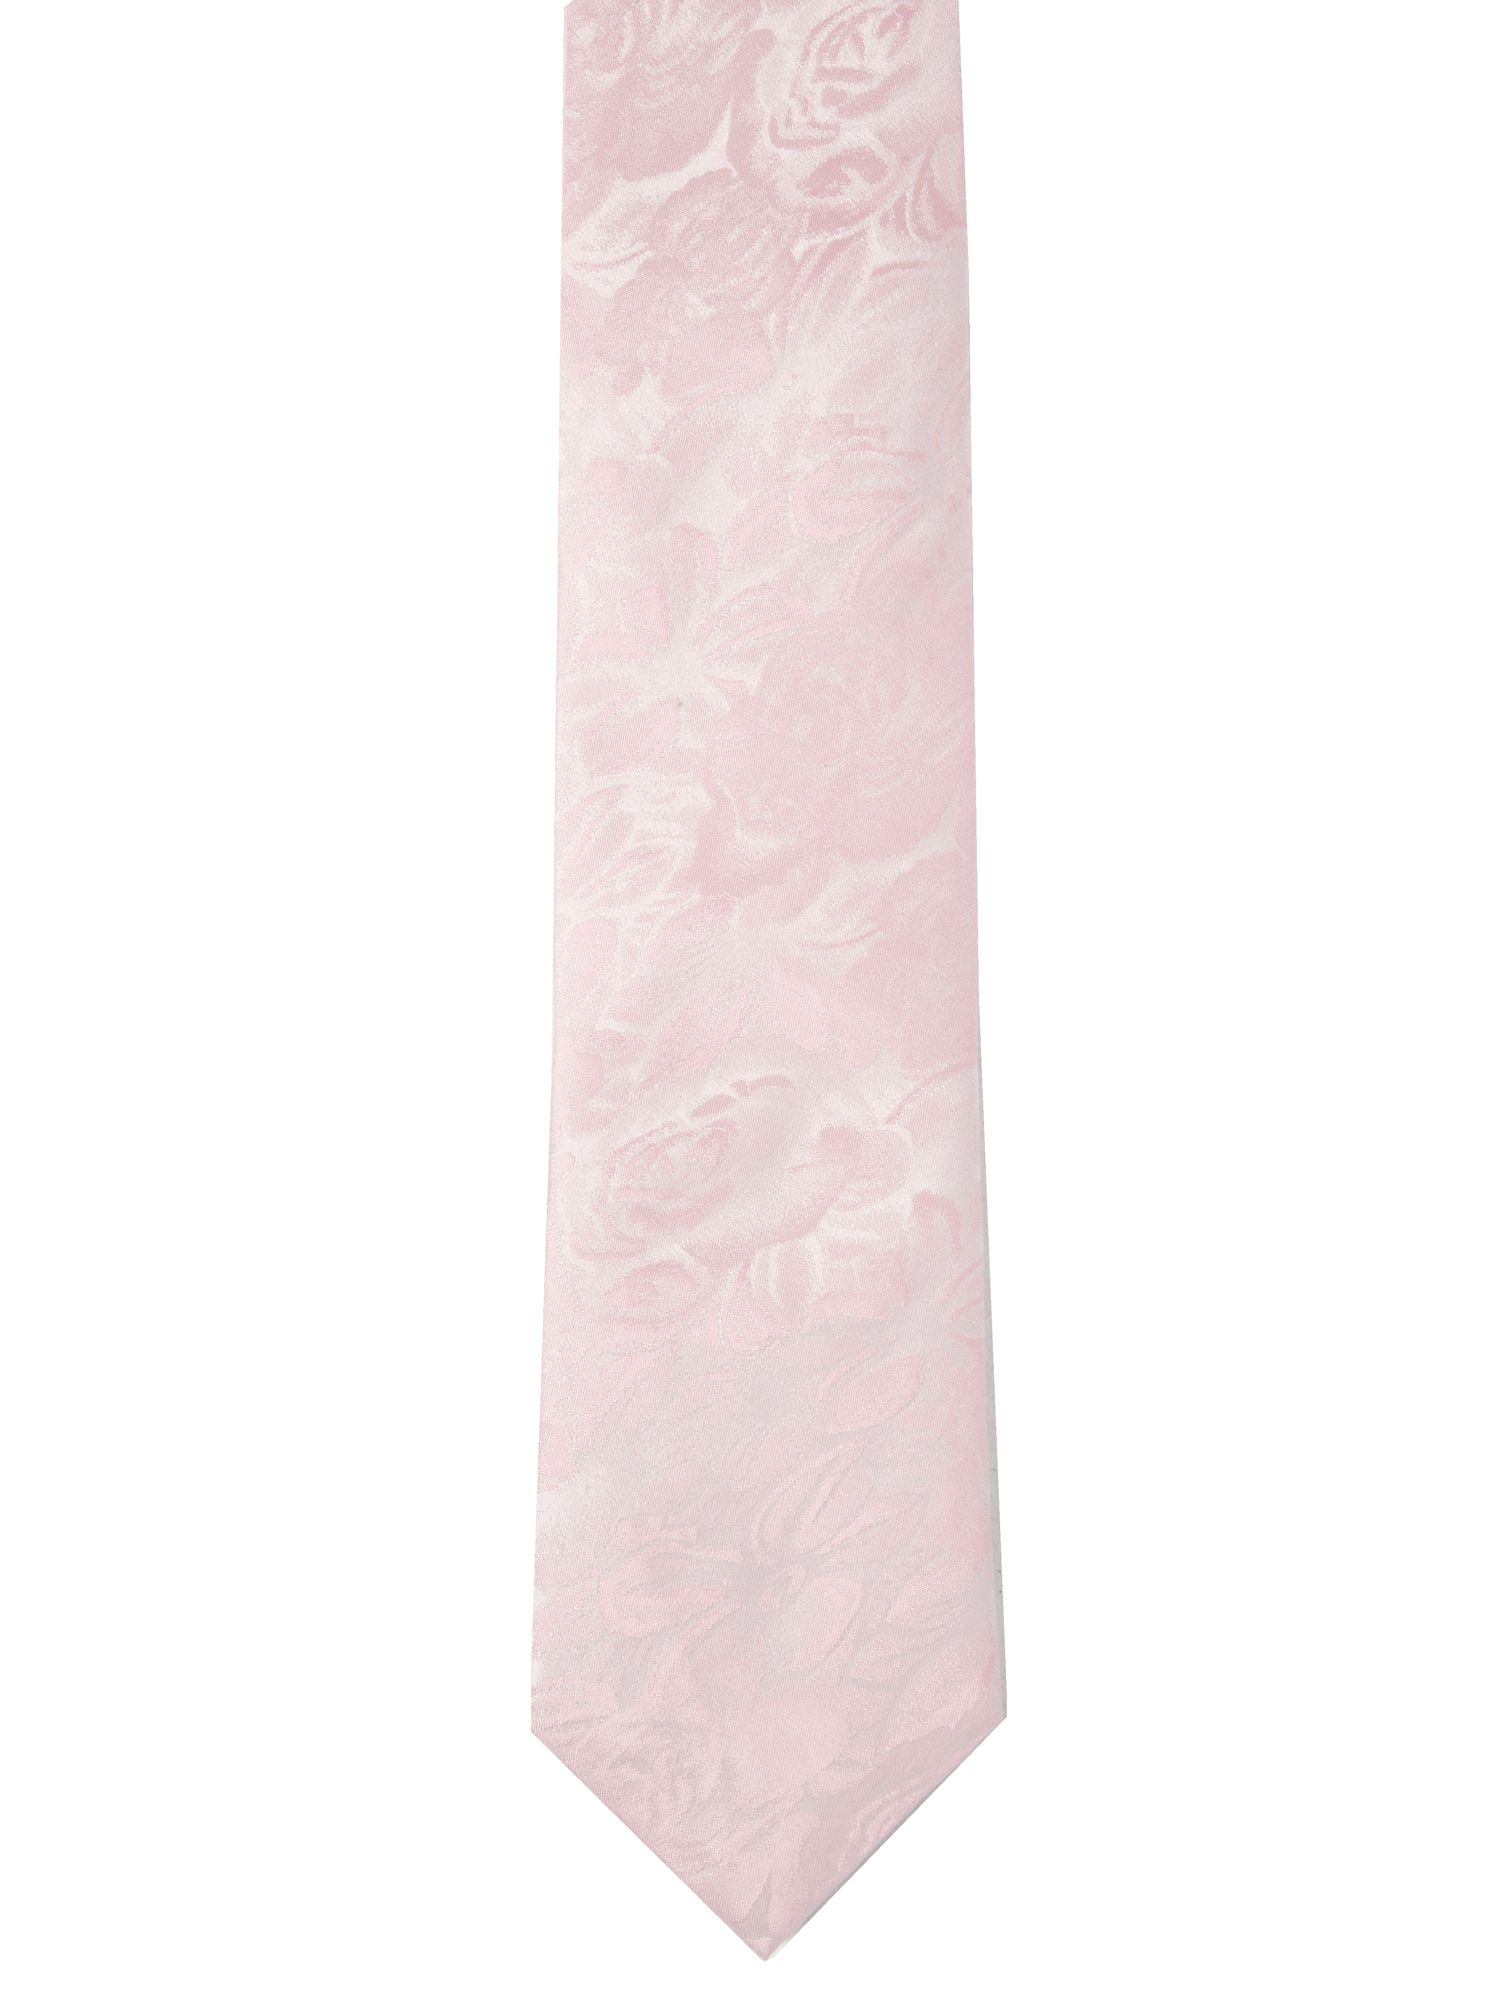 Pink tie and hank set